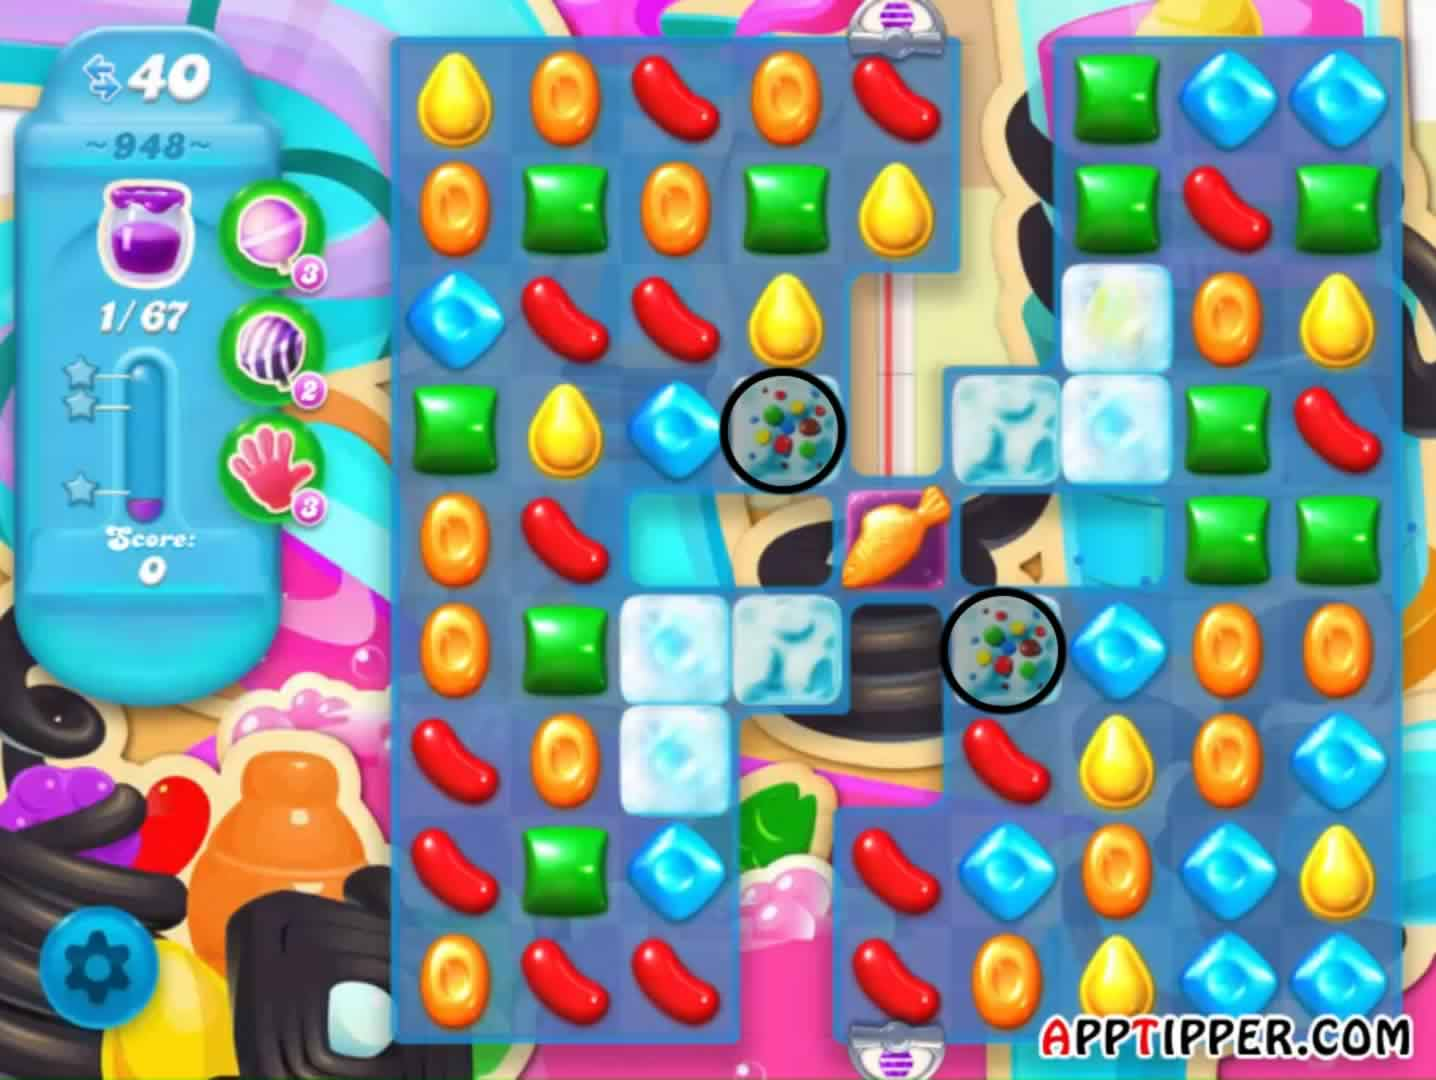 Candy Crush Soda level 948 Image